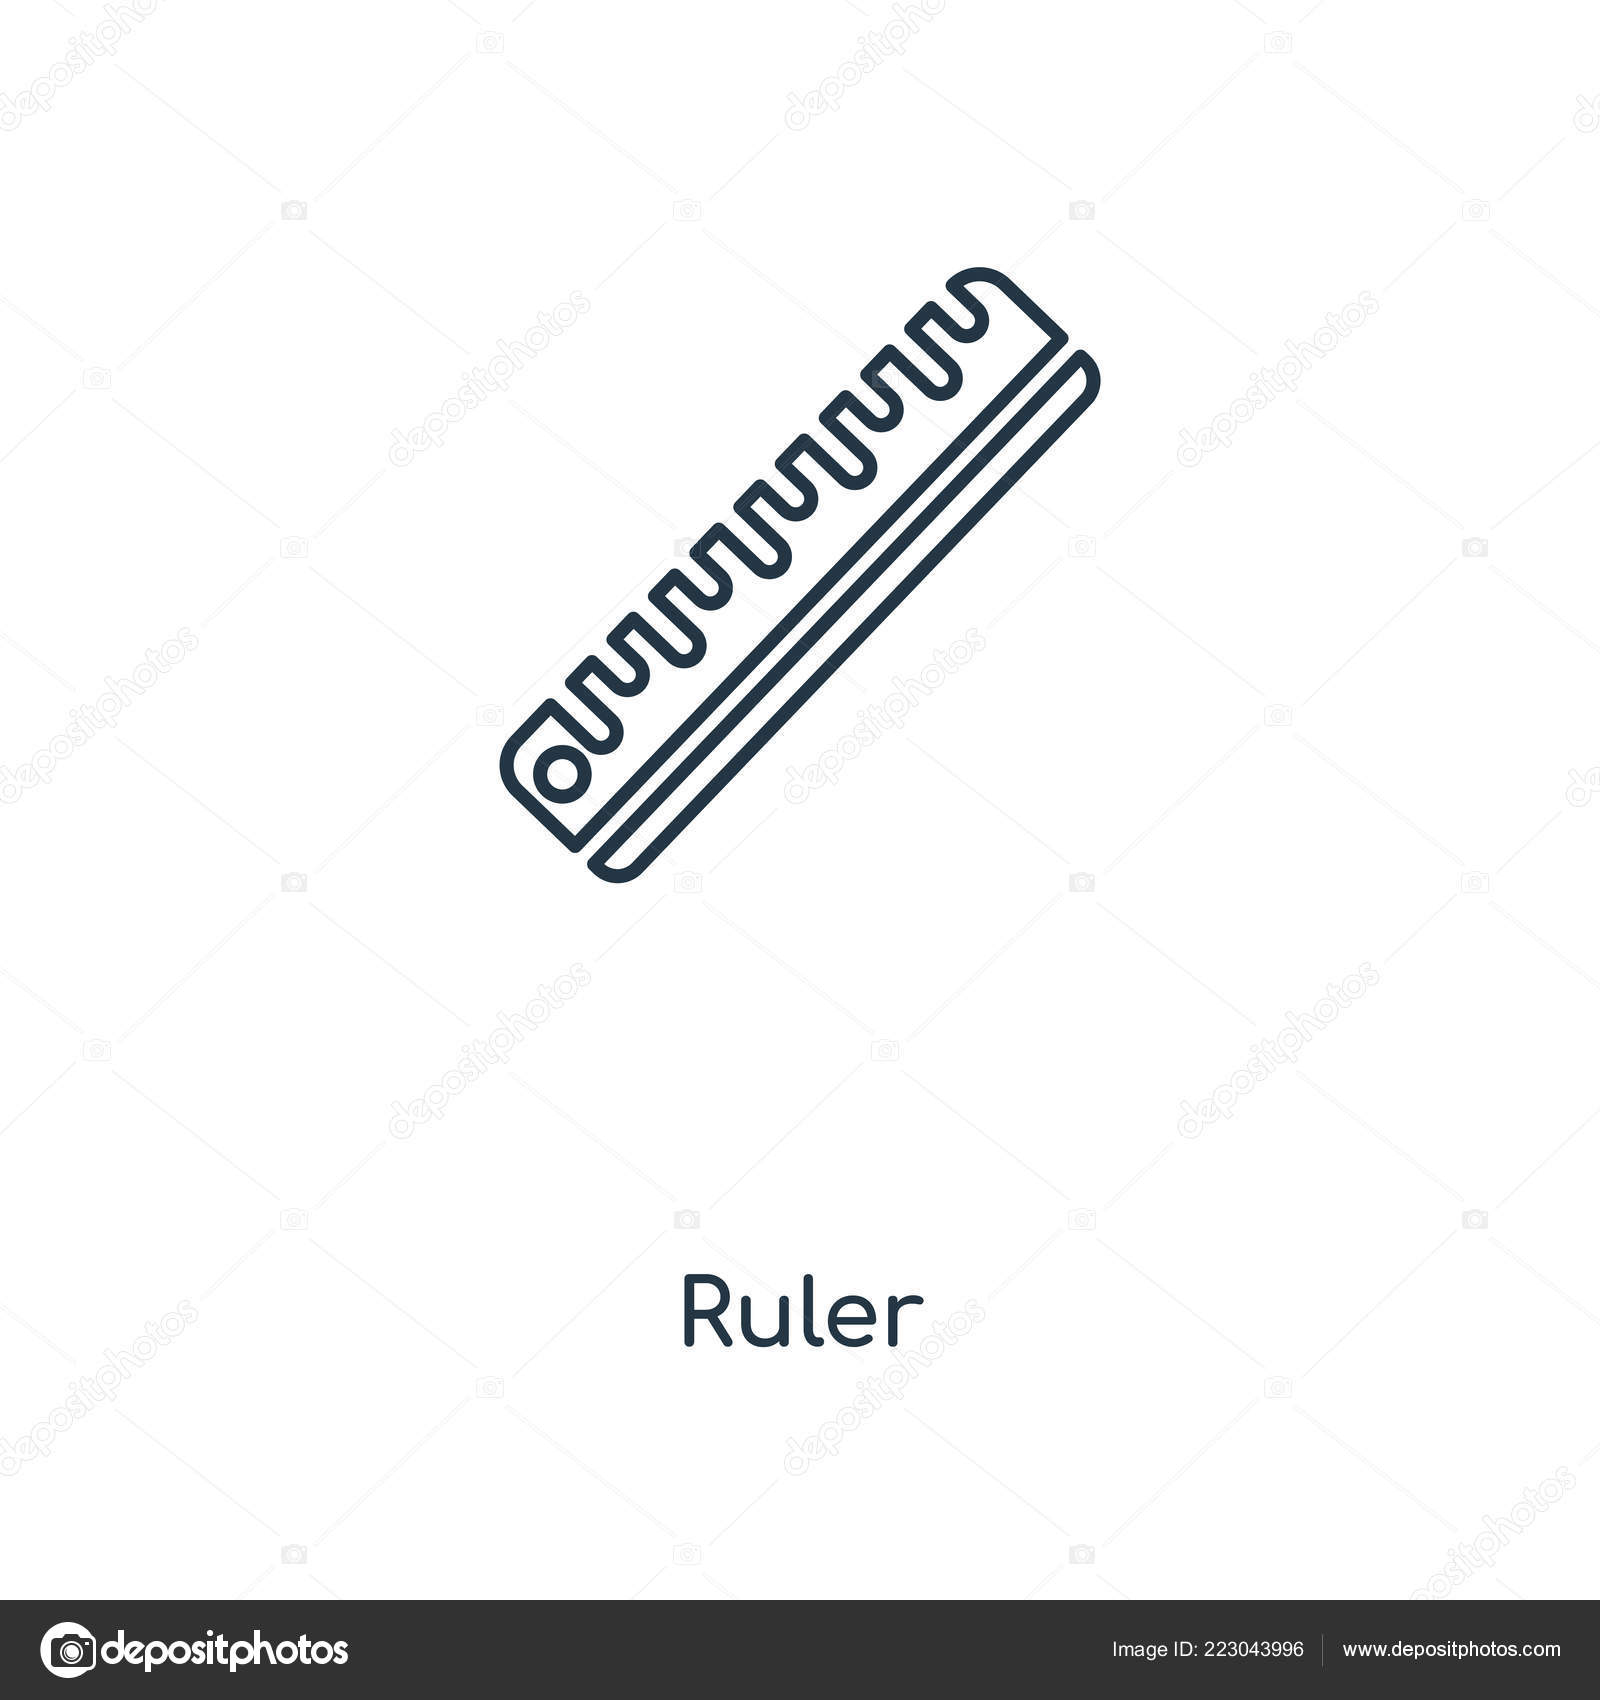 ruler icon trendy design style ruler icon isolated white background stock vector c topvectorstock 223043996 depositphotos